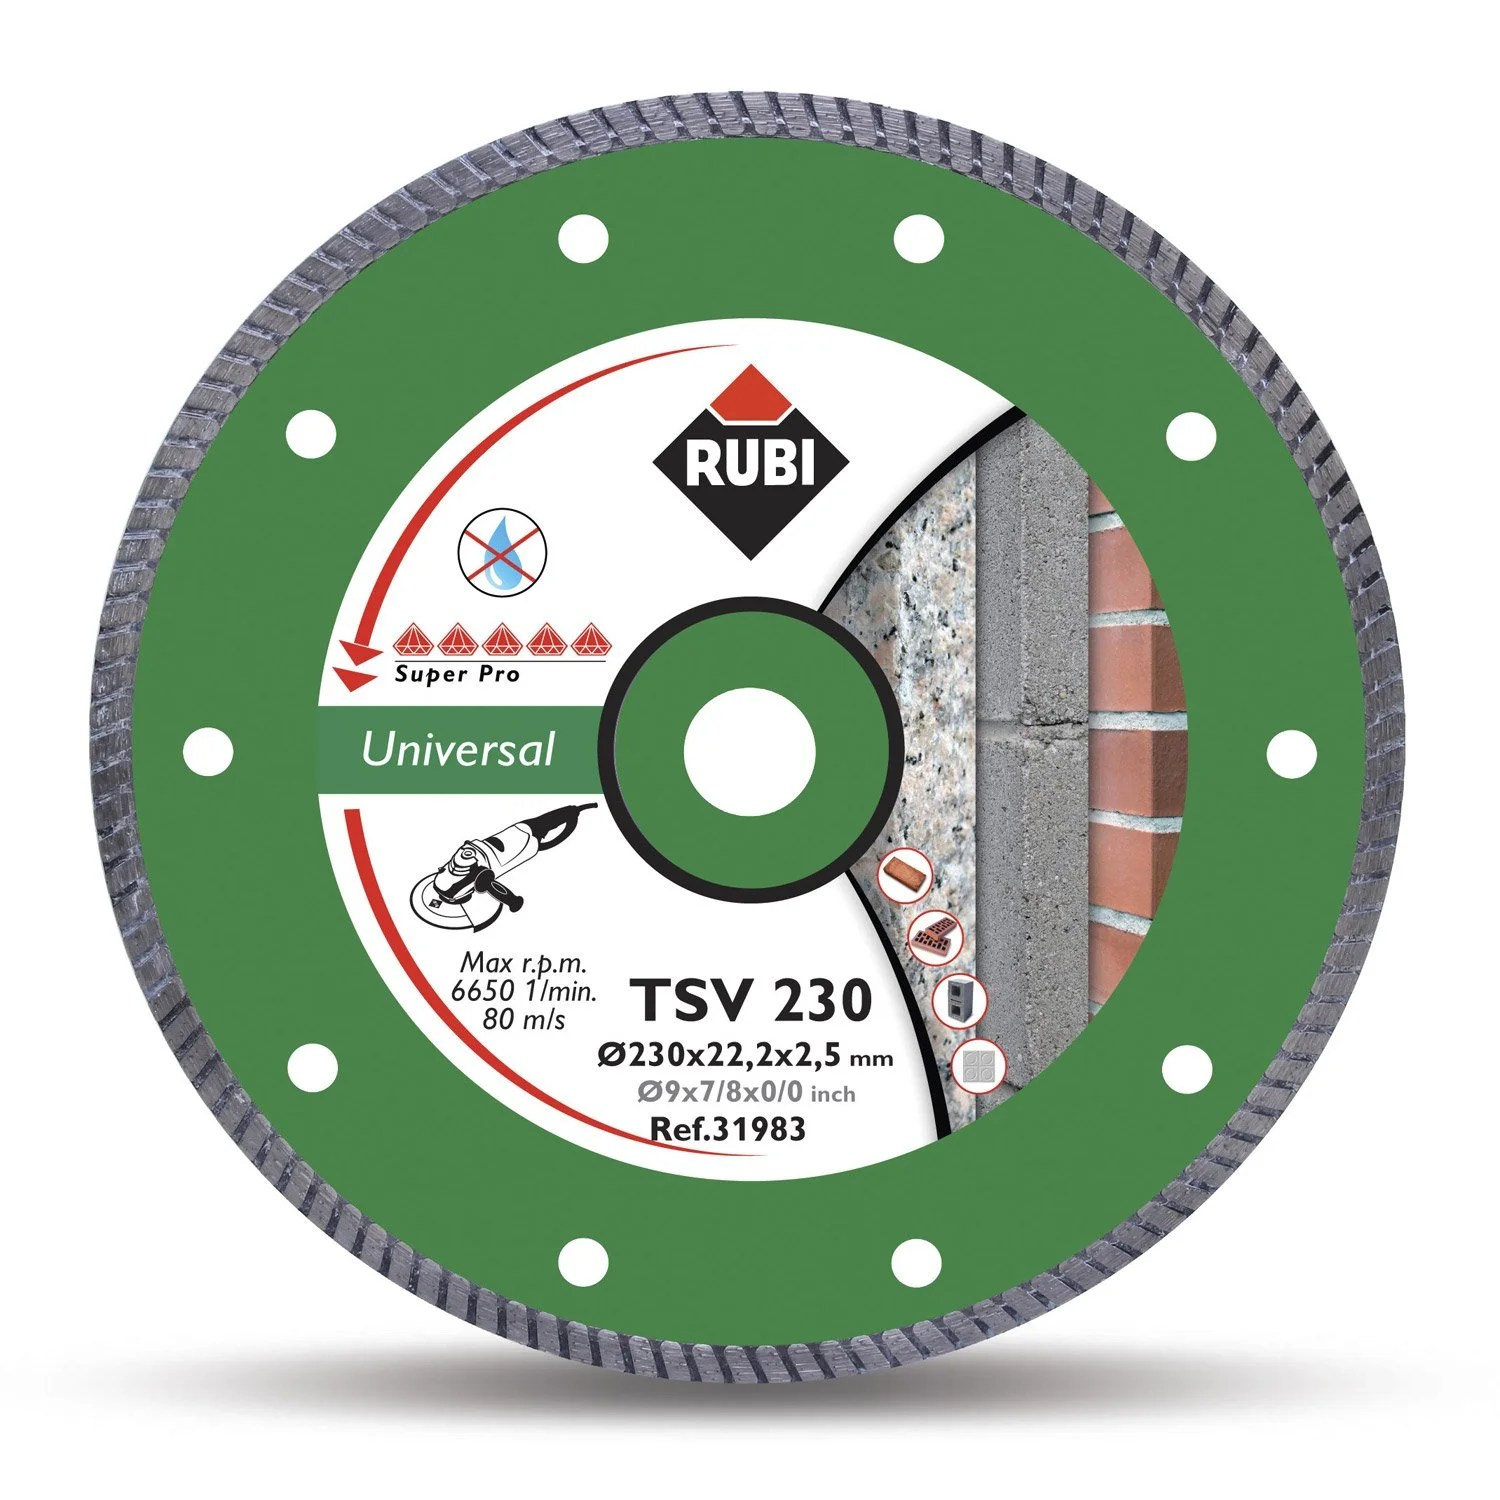 Leroy Merlin Disque Diamant Disque Diamant Turbo Rubi Tsv 125 Pro 125 Mm Leroy Merlin